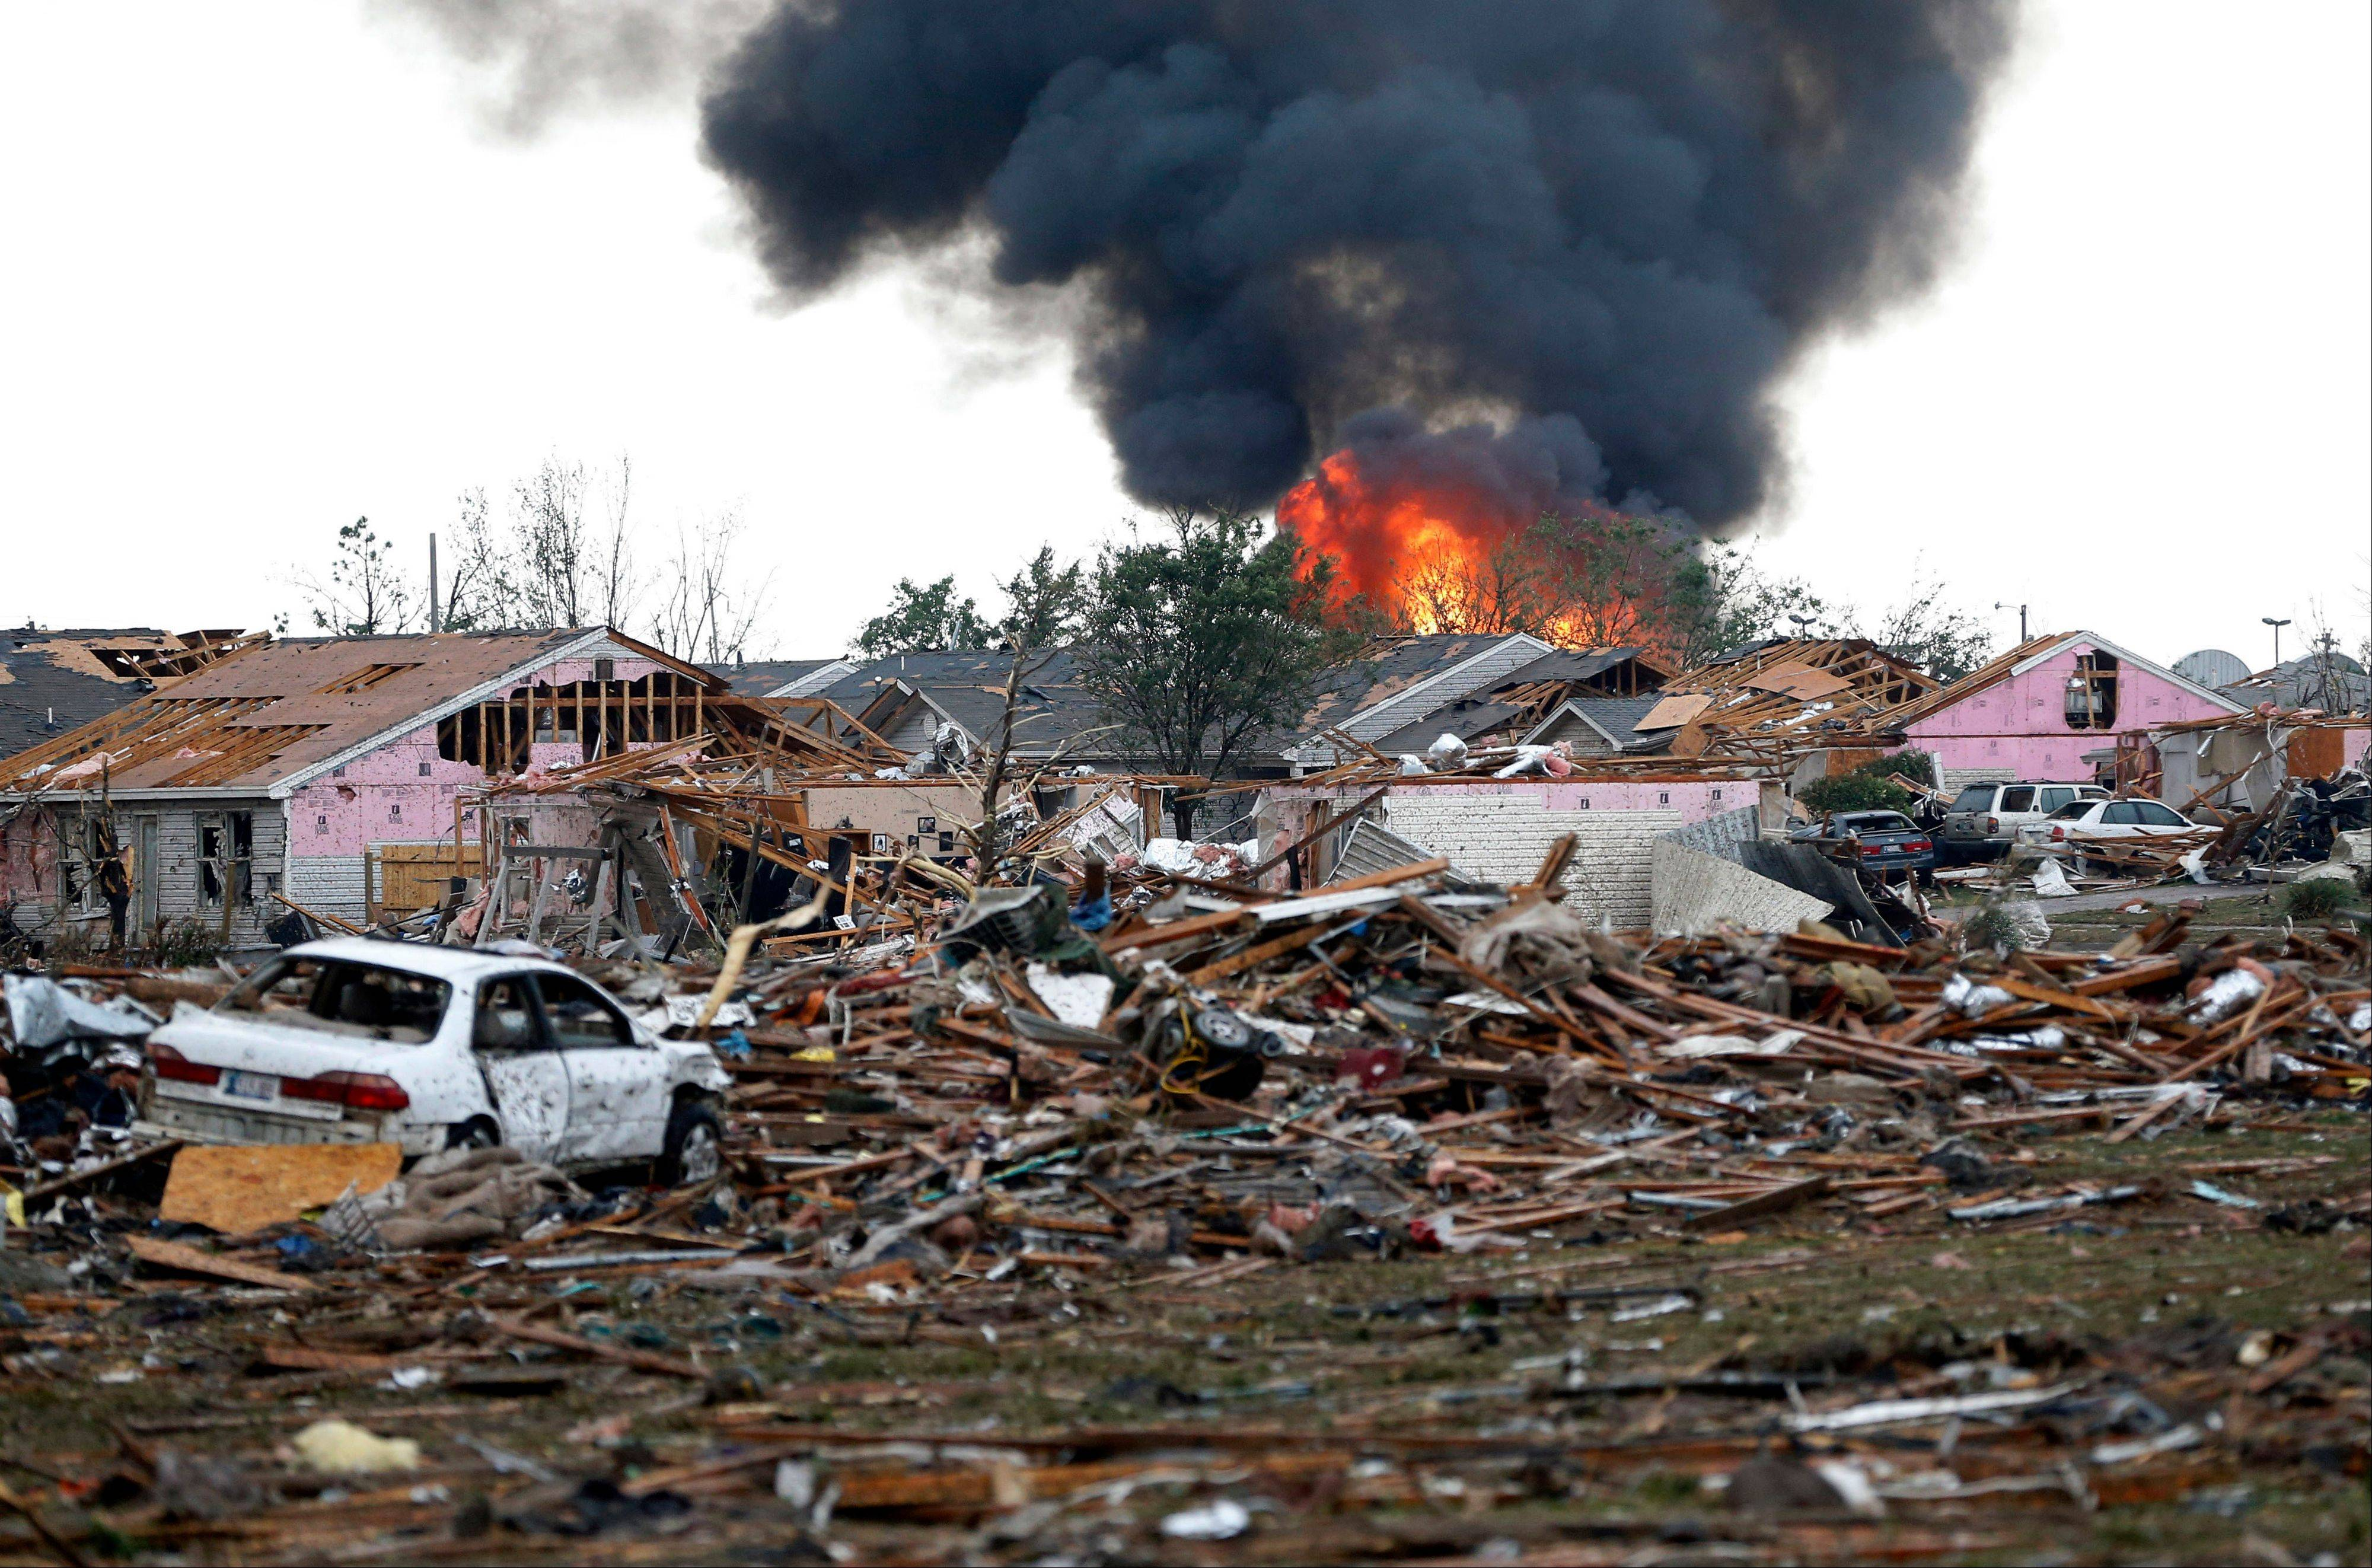 A fire burns in the Tower Plaza Addition in Moore, Okla., following a tornado Monday, May 20, 2013. A tornado as much as a mile wide with winds up to 200 mph roared through the Oklahoma City suburbs Monday, flattening entire neighborhoods, setting buildings on fire and landing a direct blow on an elementary school.